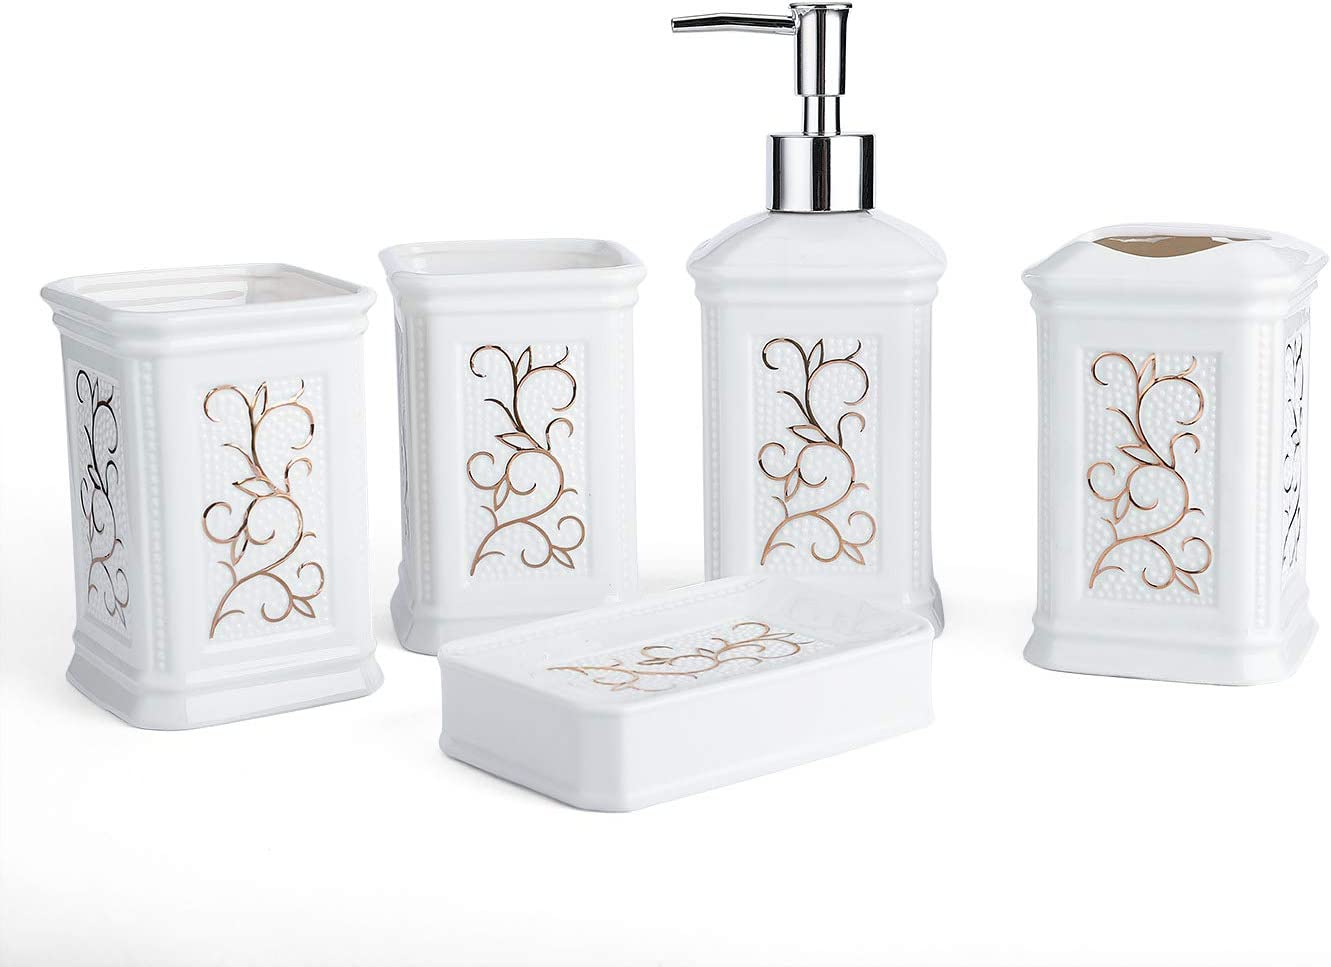 Longhang 5-Piece White Porcelain Ceramic Bathroom Accessories Set, Bath Decor Includes Liquid Soap or Lotion Dispenser Pump, Toothbrush Holder, Tumbler and Soap Dish, Ideas Home Gift